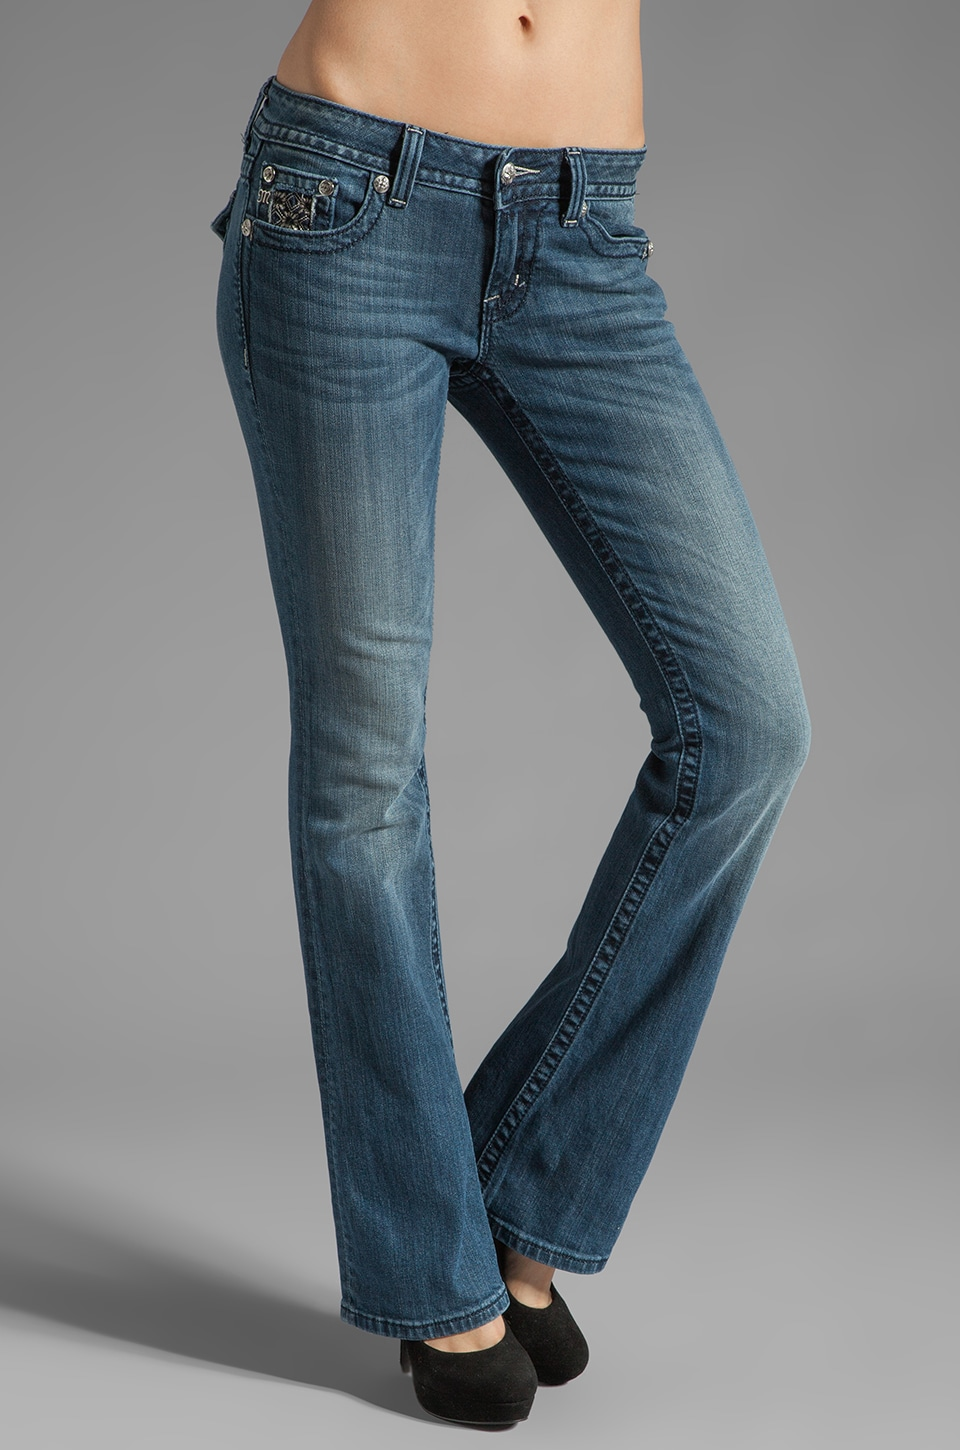 Miss Me Jeans Boot Cut Jeans in Med 96